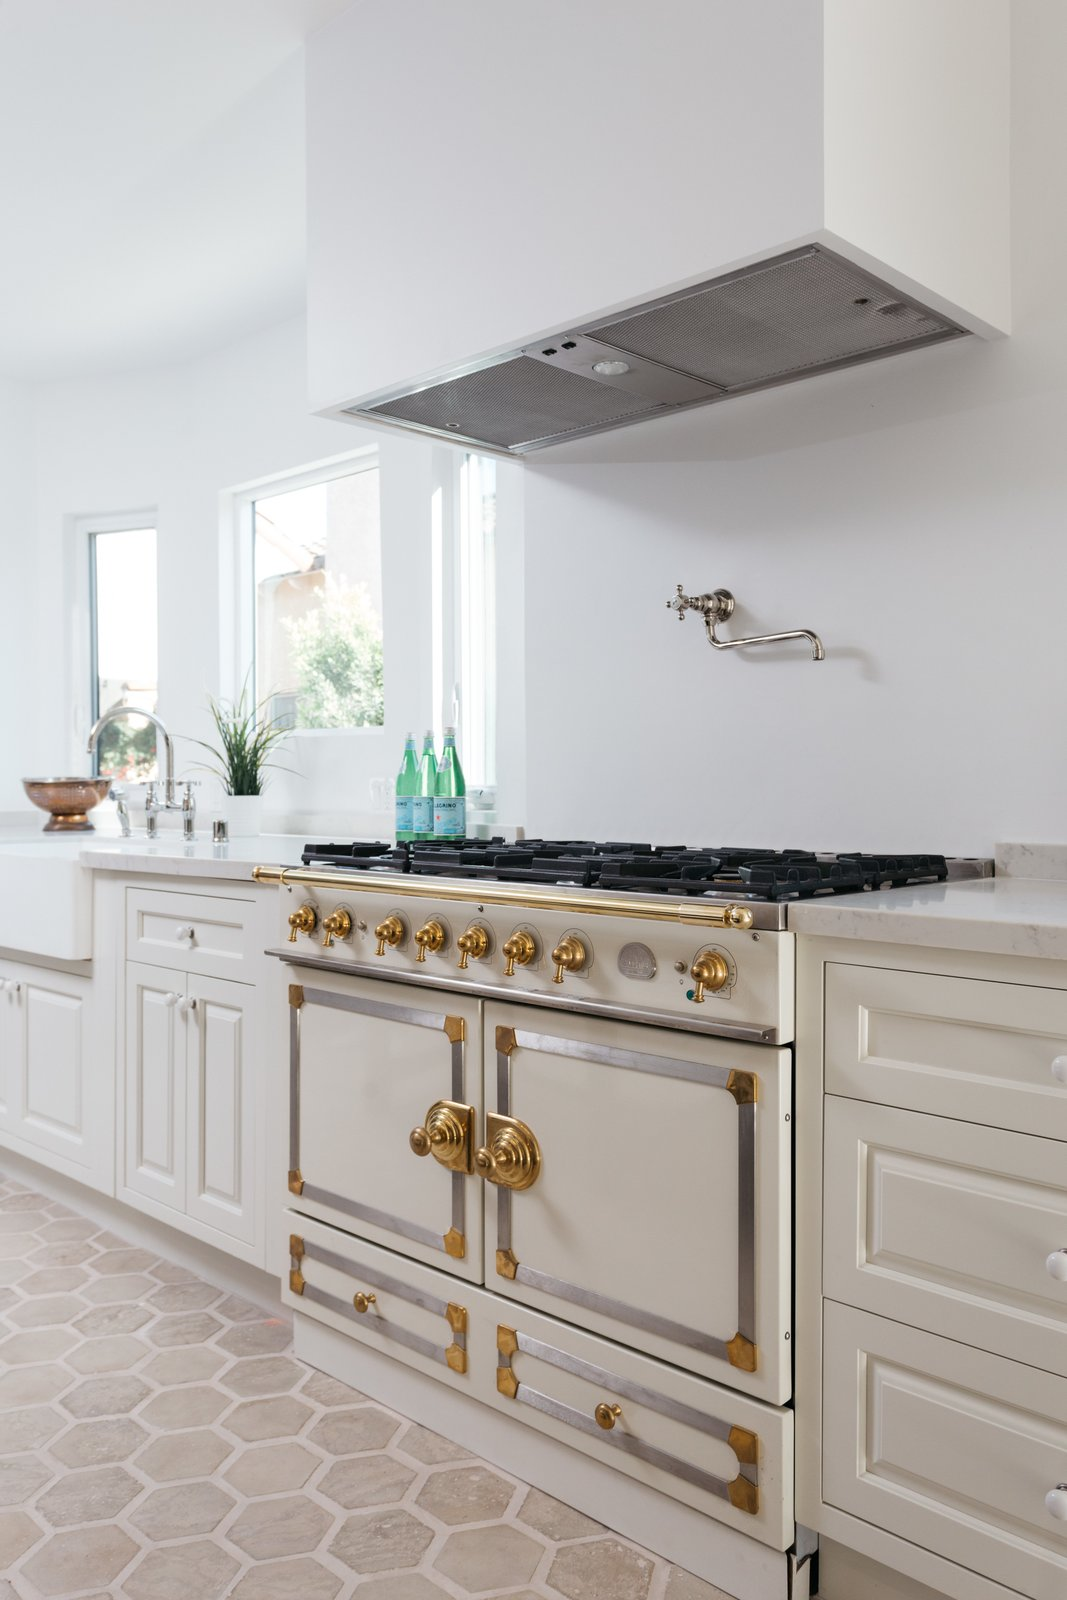 Kitchen, Drop In Sink, Range Hood, White Cabinet, Range, and Ceramic Tile Floor A beautiful La Cornue range is just one of the many high-end upgrades.  Photo 10 of 20 in An Updated Spanish-Style Abode with an Artist Studio Hits the Market at $1.1M in L.A.